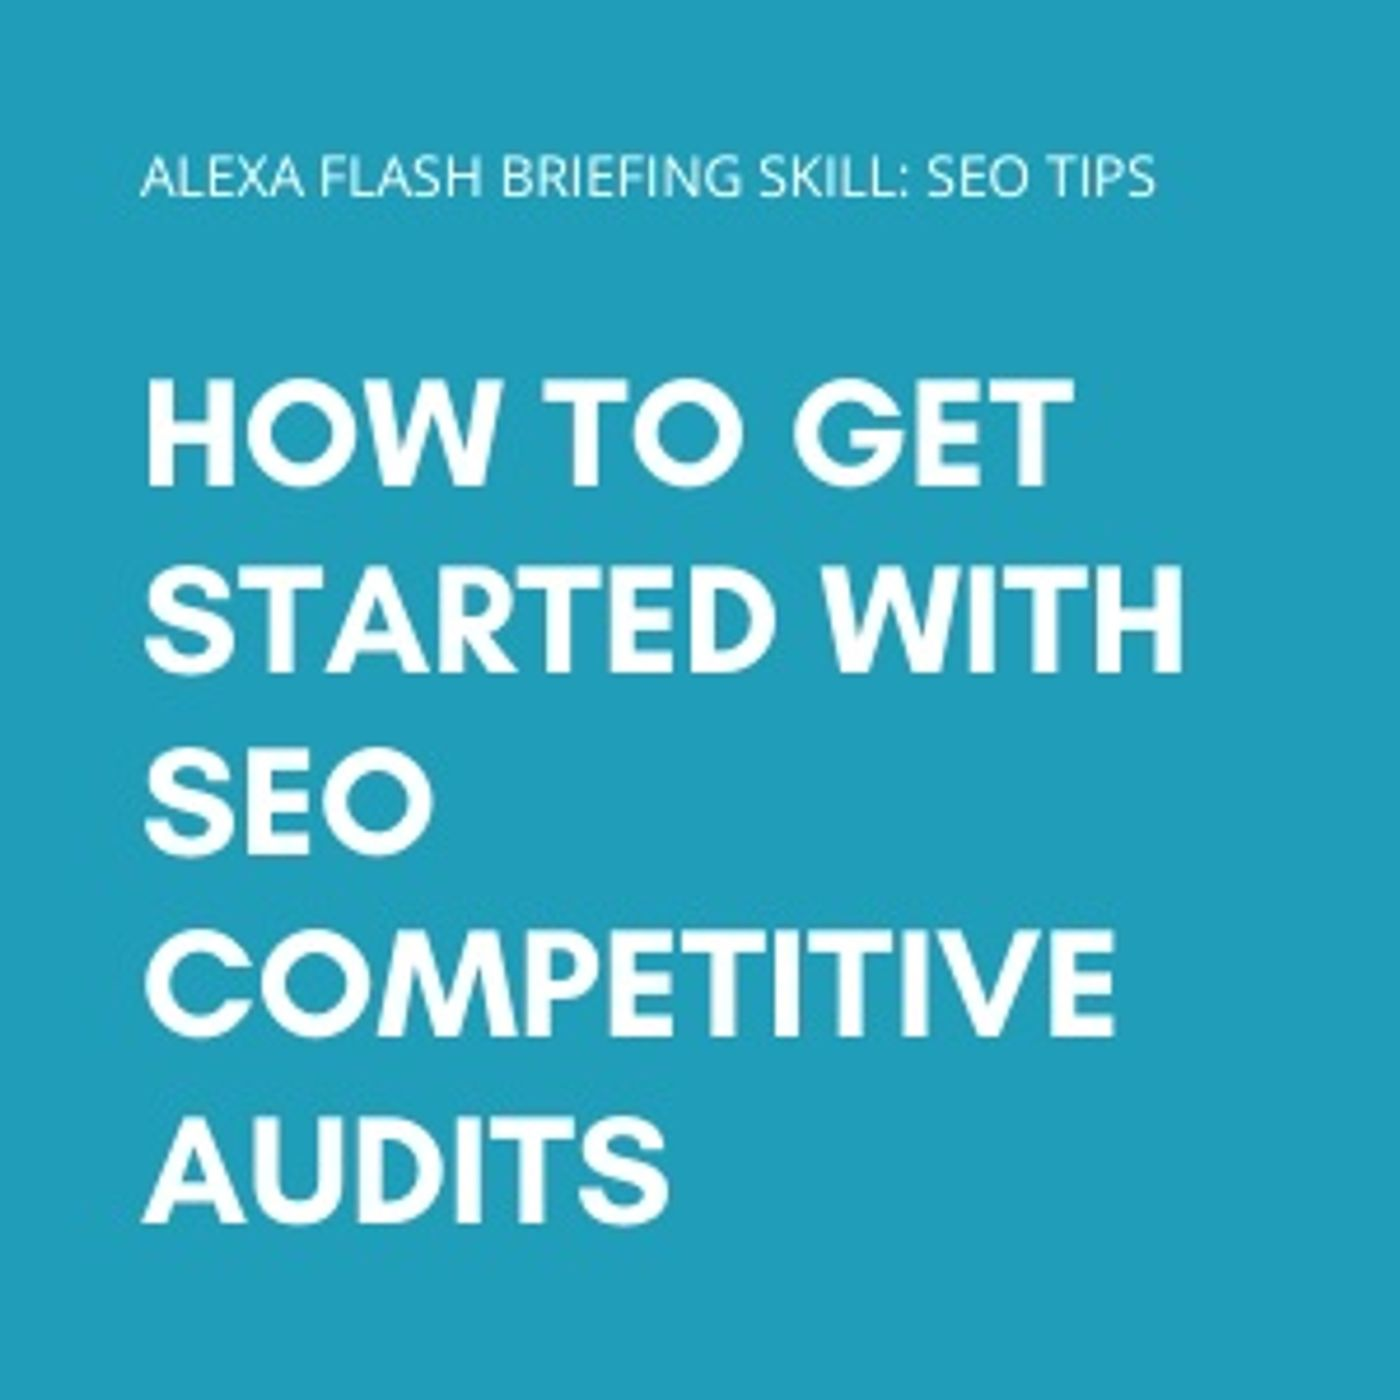 How to get started with SEO competitive audits